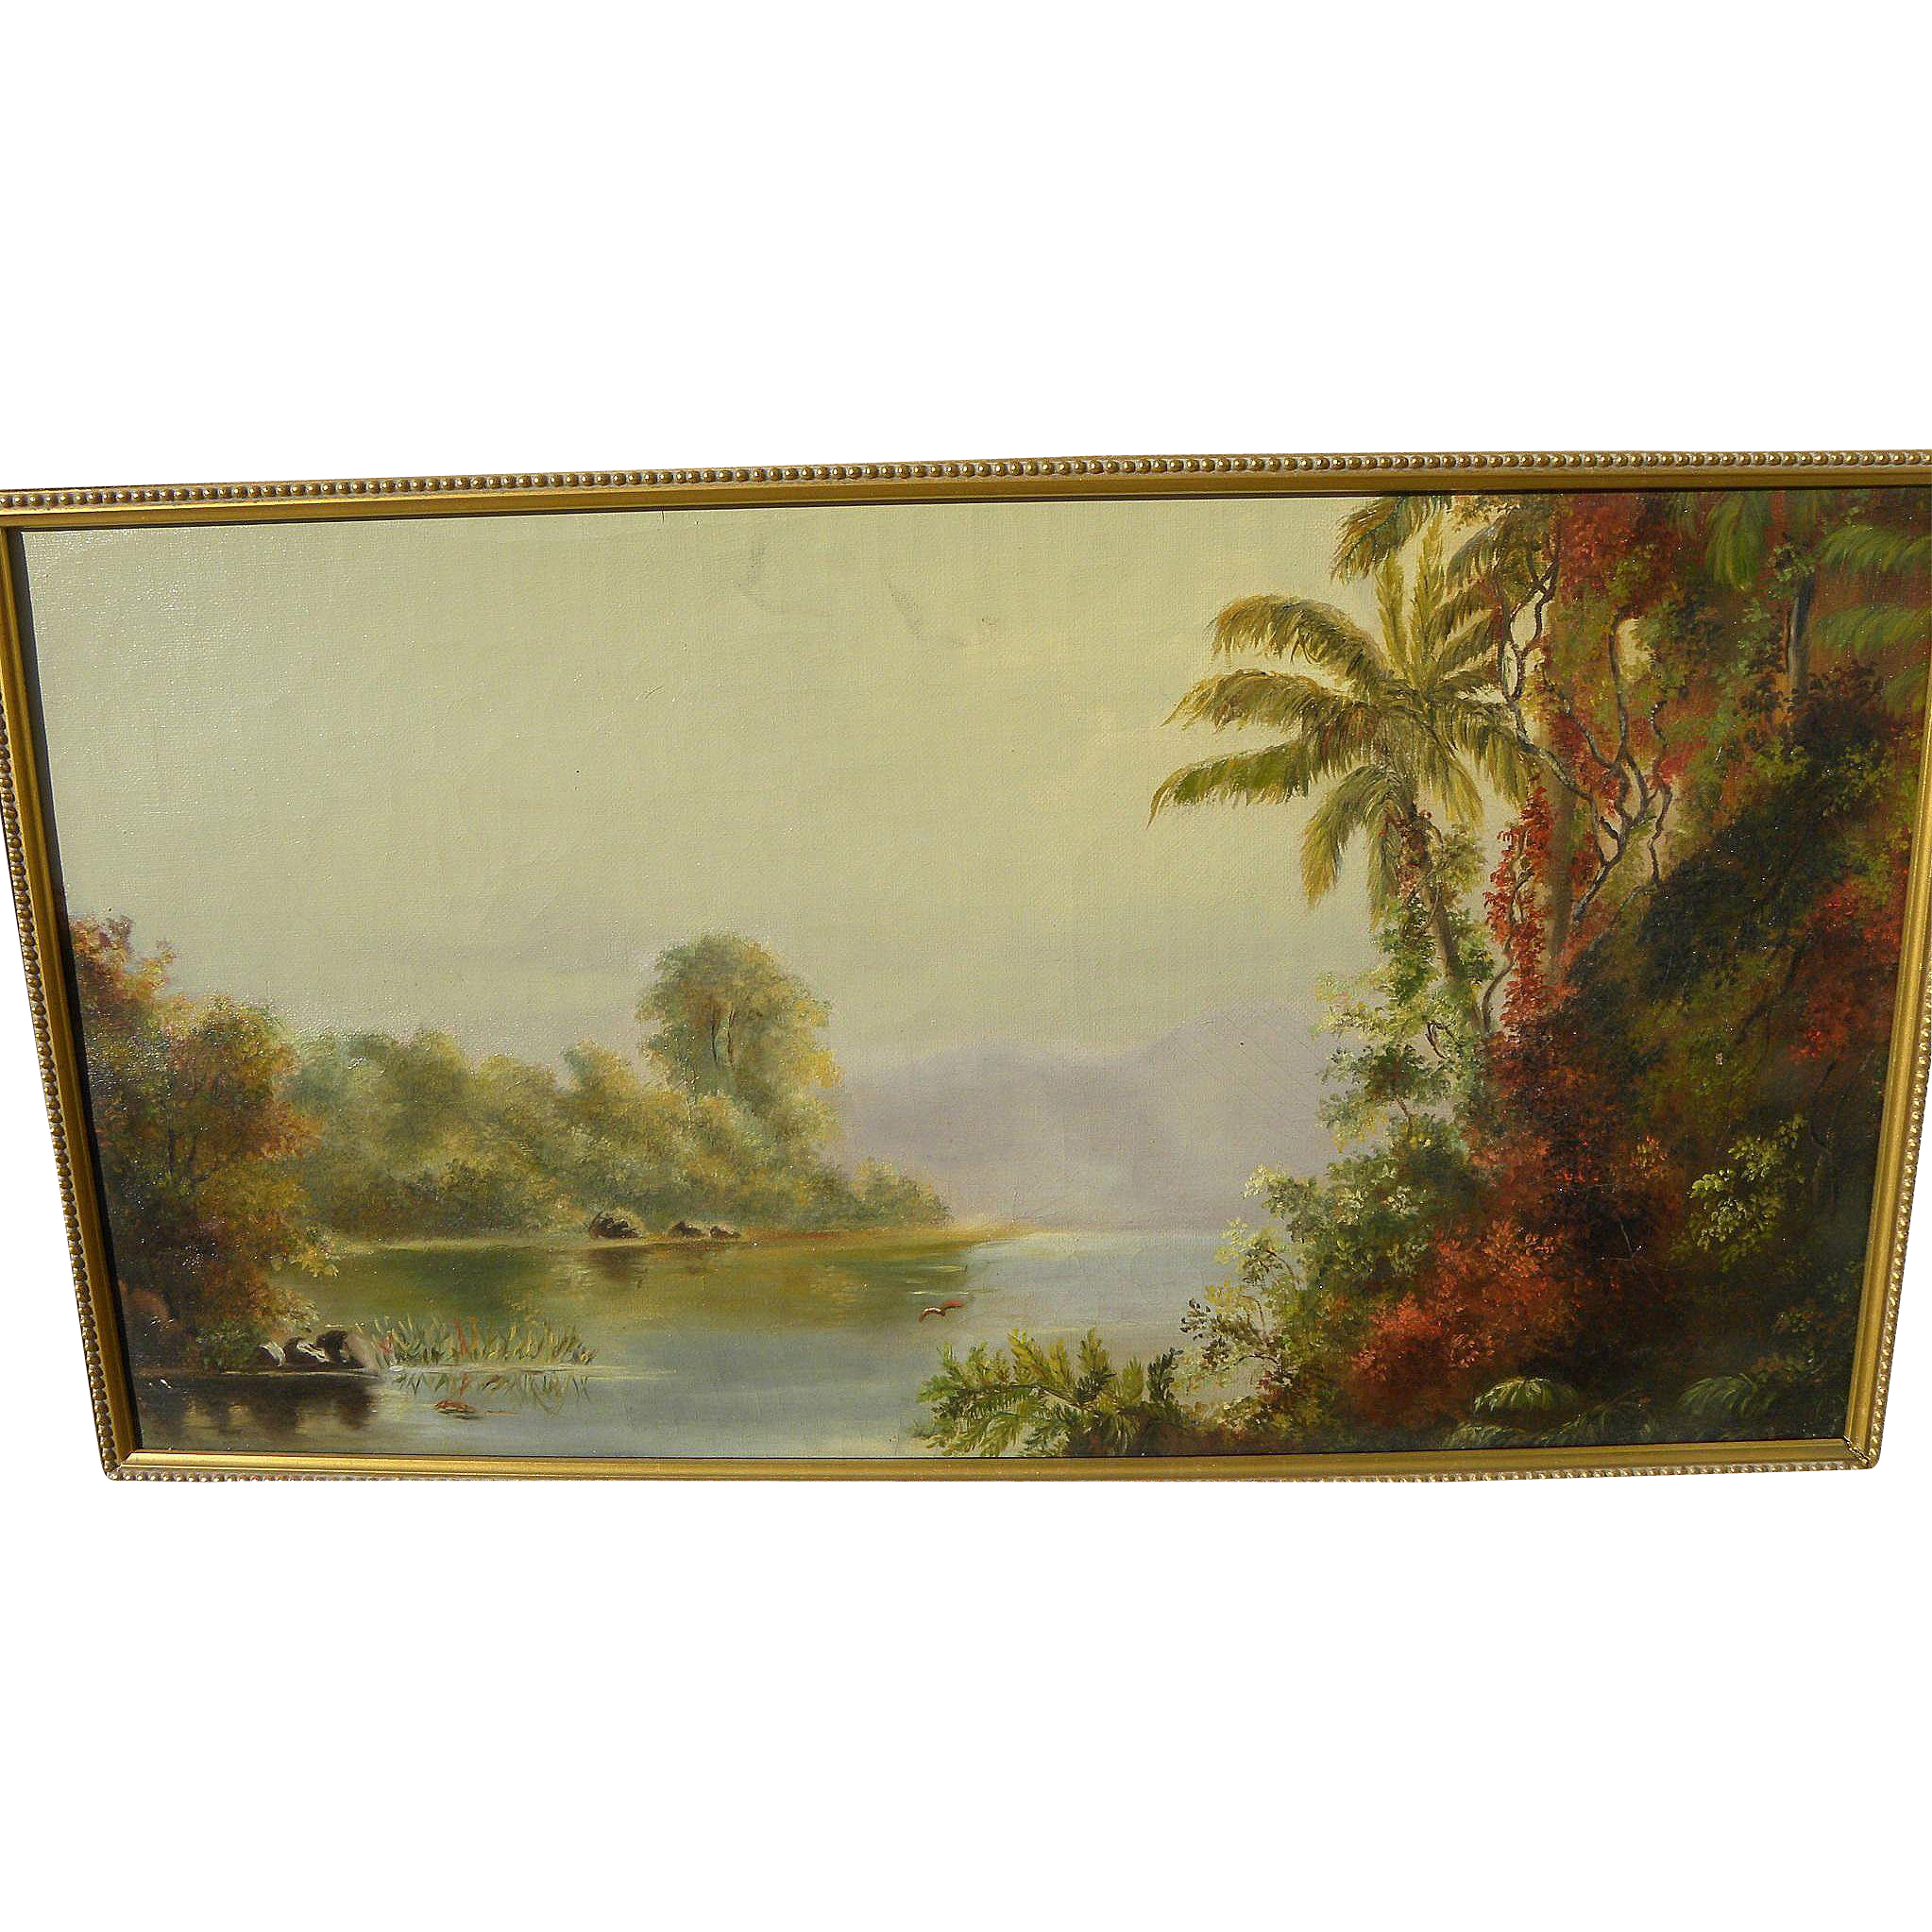 Atmospheric late 19th century tropical landscape painting in style of California artist Norton Bush